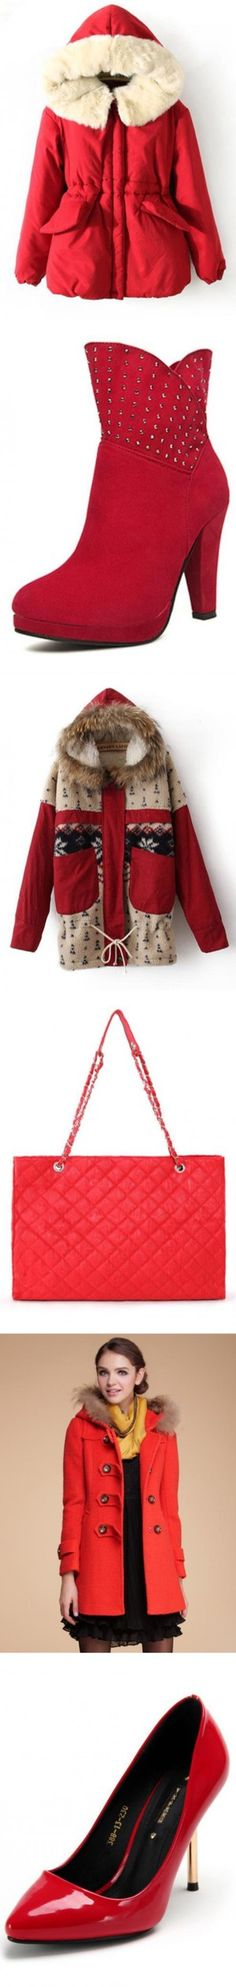 """""""Seeing Red"""" by udobuy ❤ liked on Polyvore"""